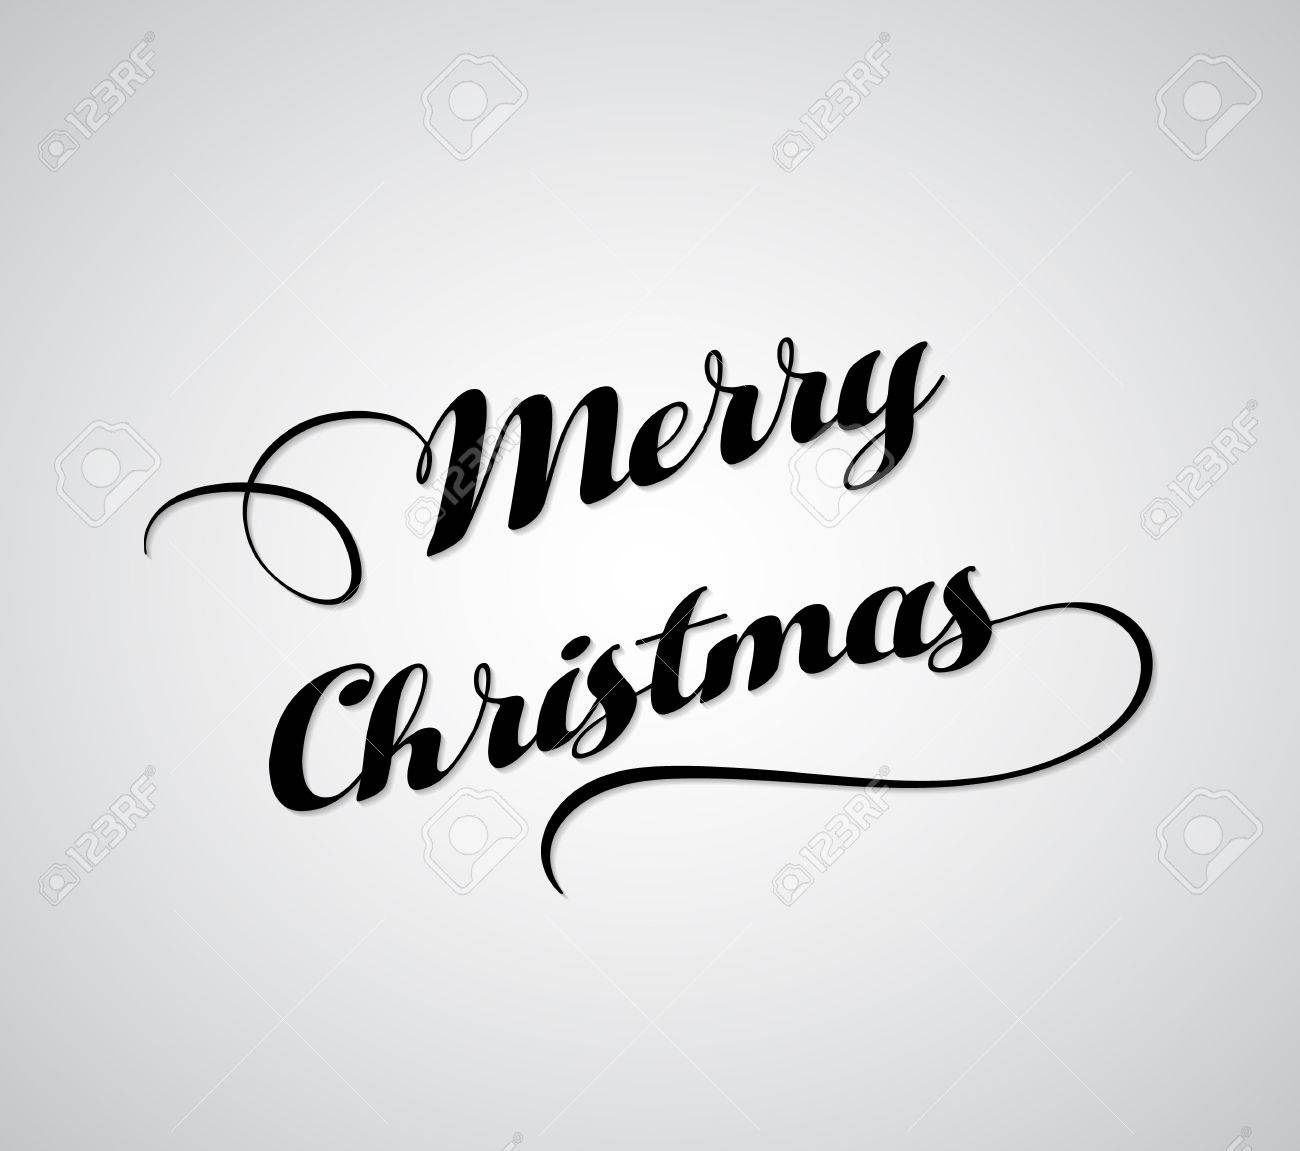 Merry Christmas Greeting Card Merry Christmas Black Letters Royalty